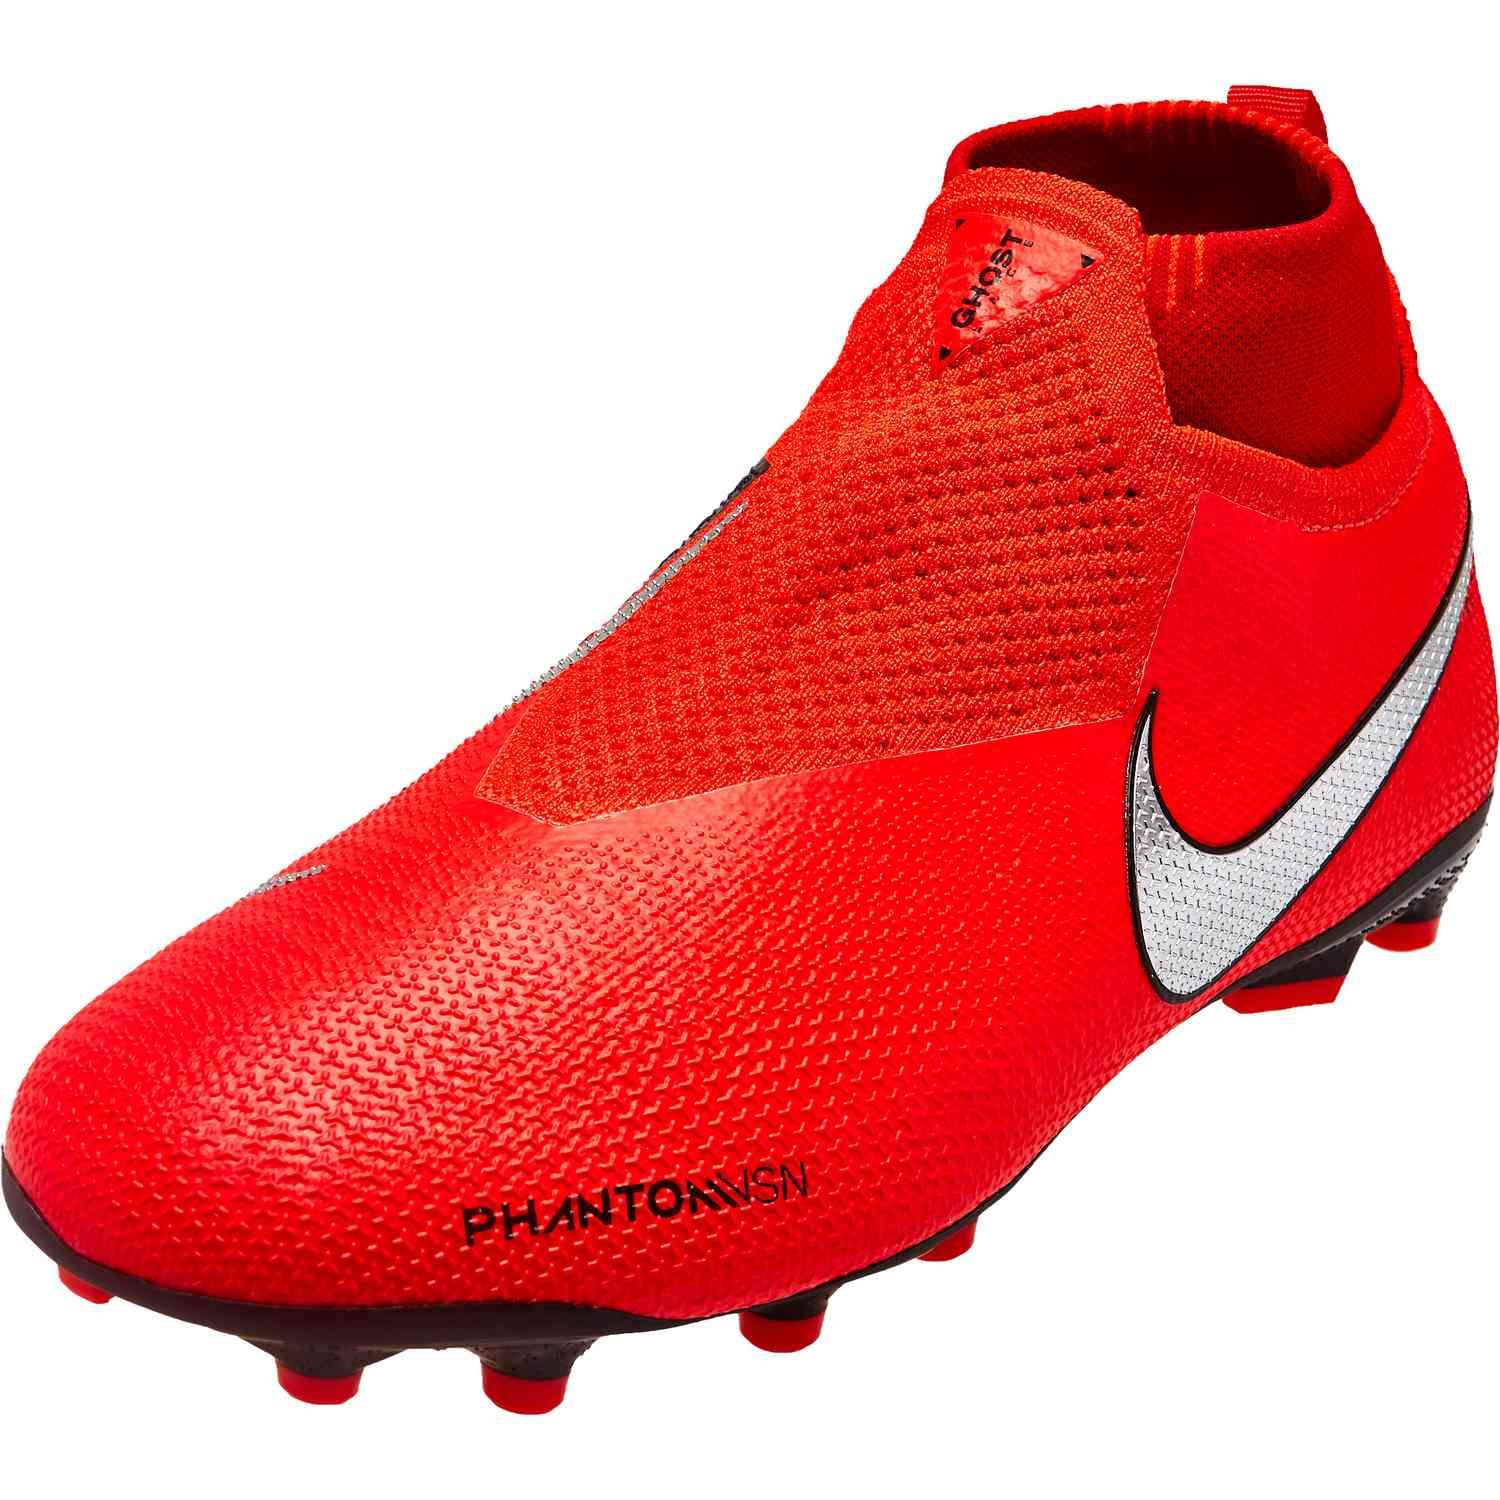 Kids Nike Phantomvsn Elite Game Over Nike Soccer Shoes Soccer Cleats Adidas Soccer Shoes